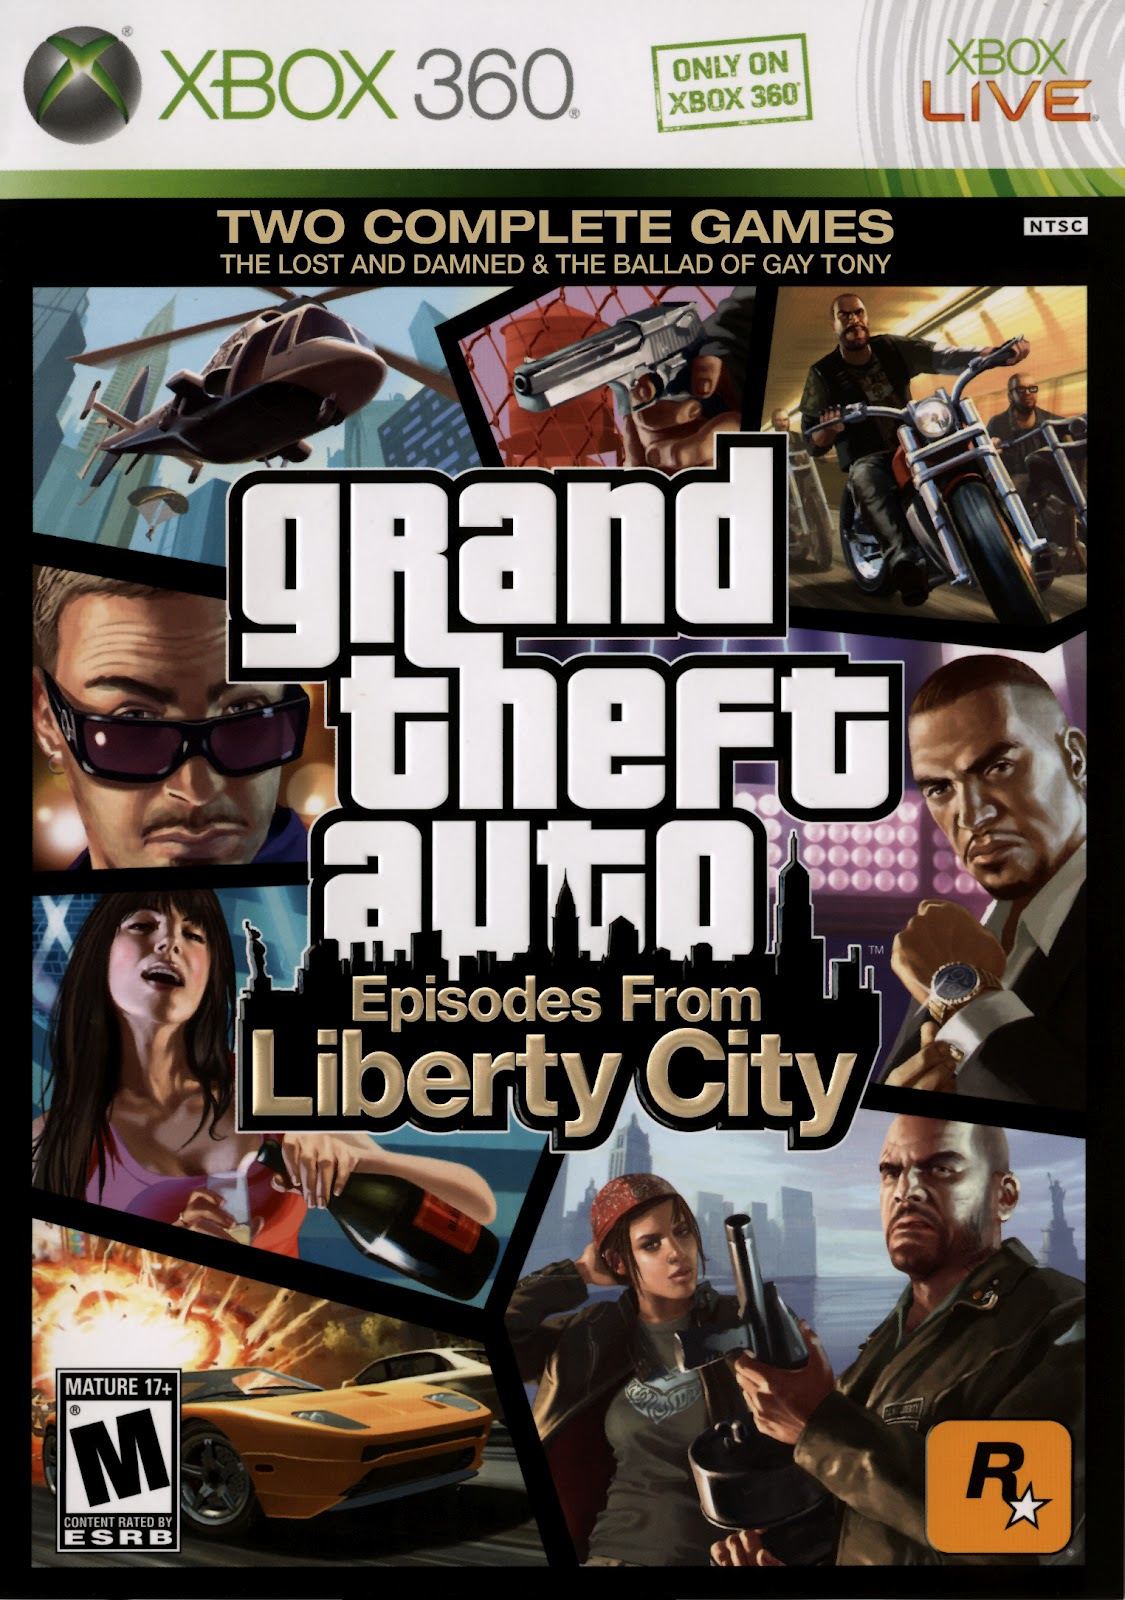 Venom Games Grand Theft Auto IV Episodes From Liberty City